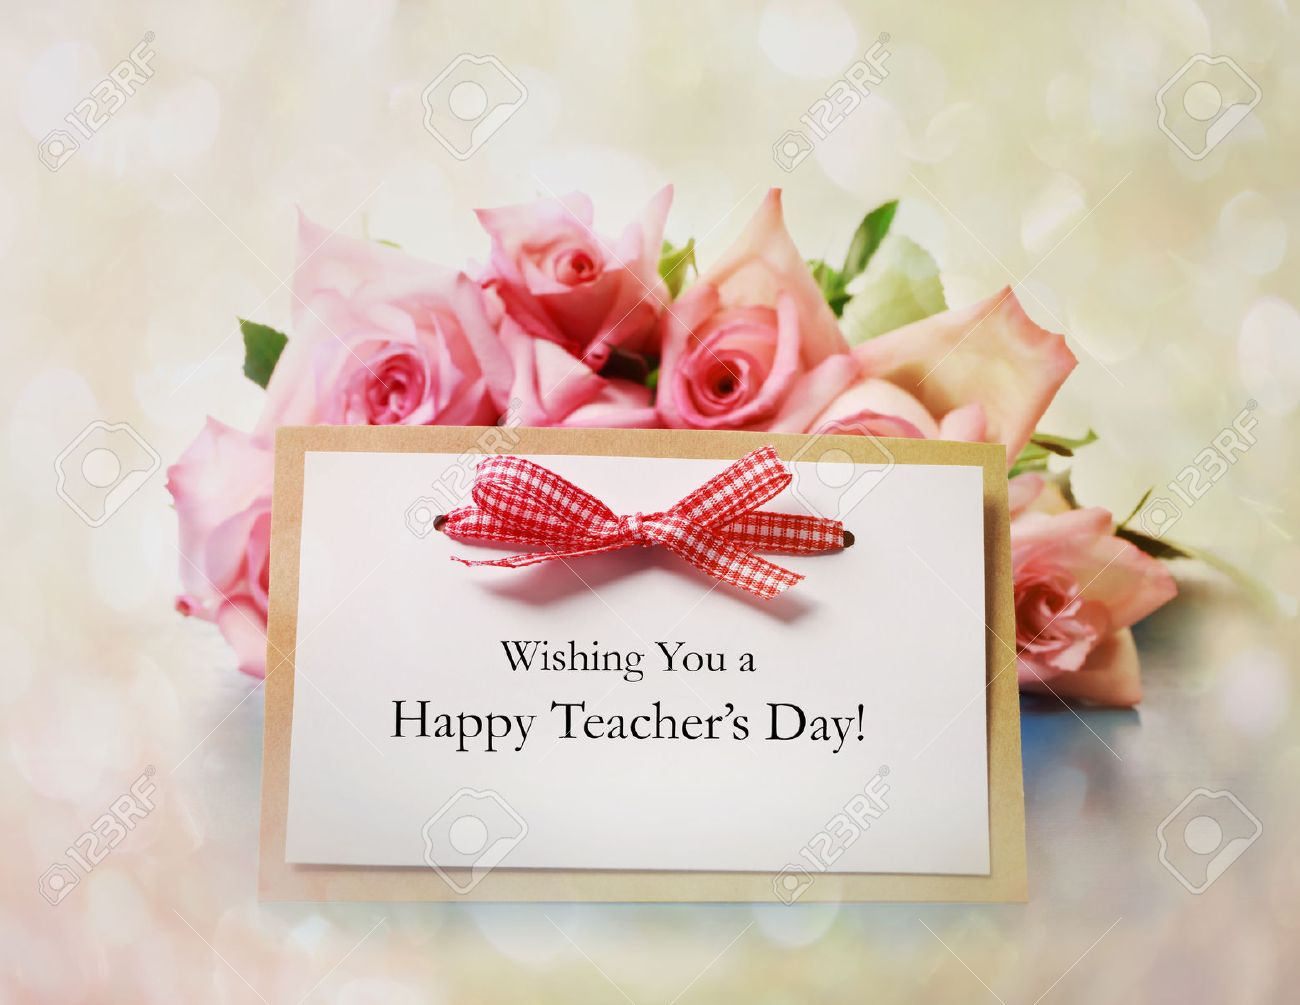 Happy teachers day message with pink roses stock photo picture and happy teachers day message with pink roses stock photo 29872438 m4hsunfo Image collections